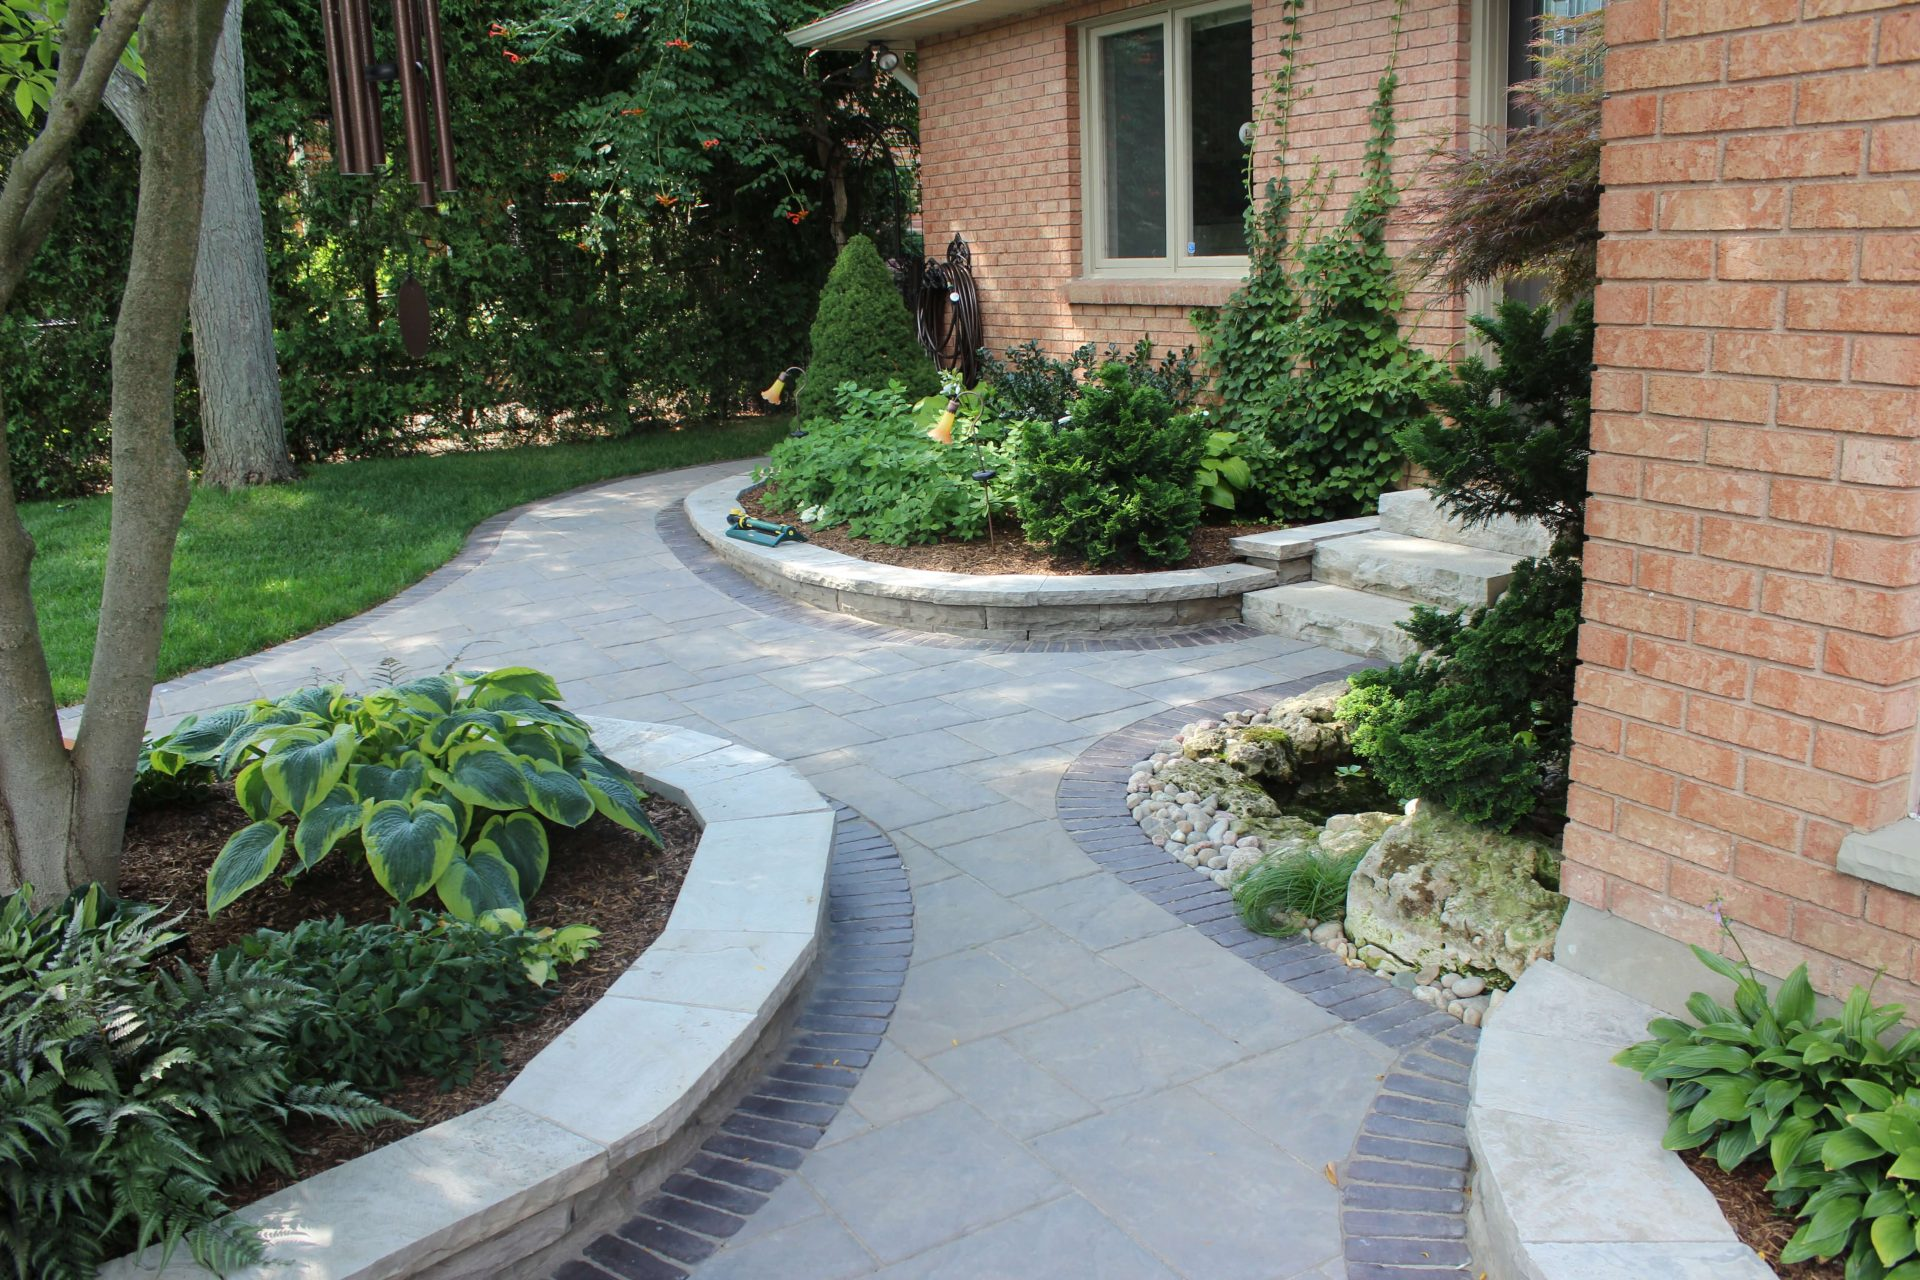 Paved pathway to entrance